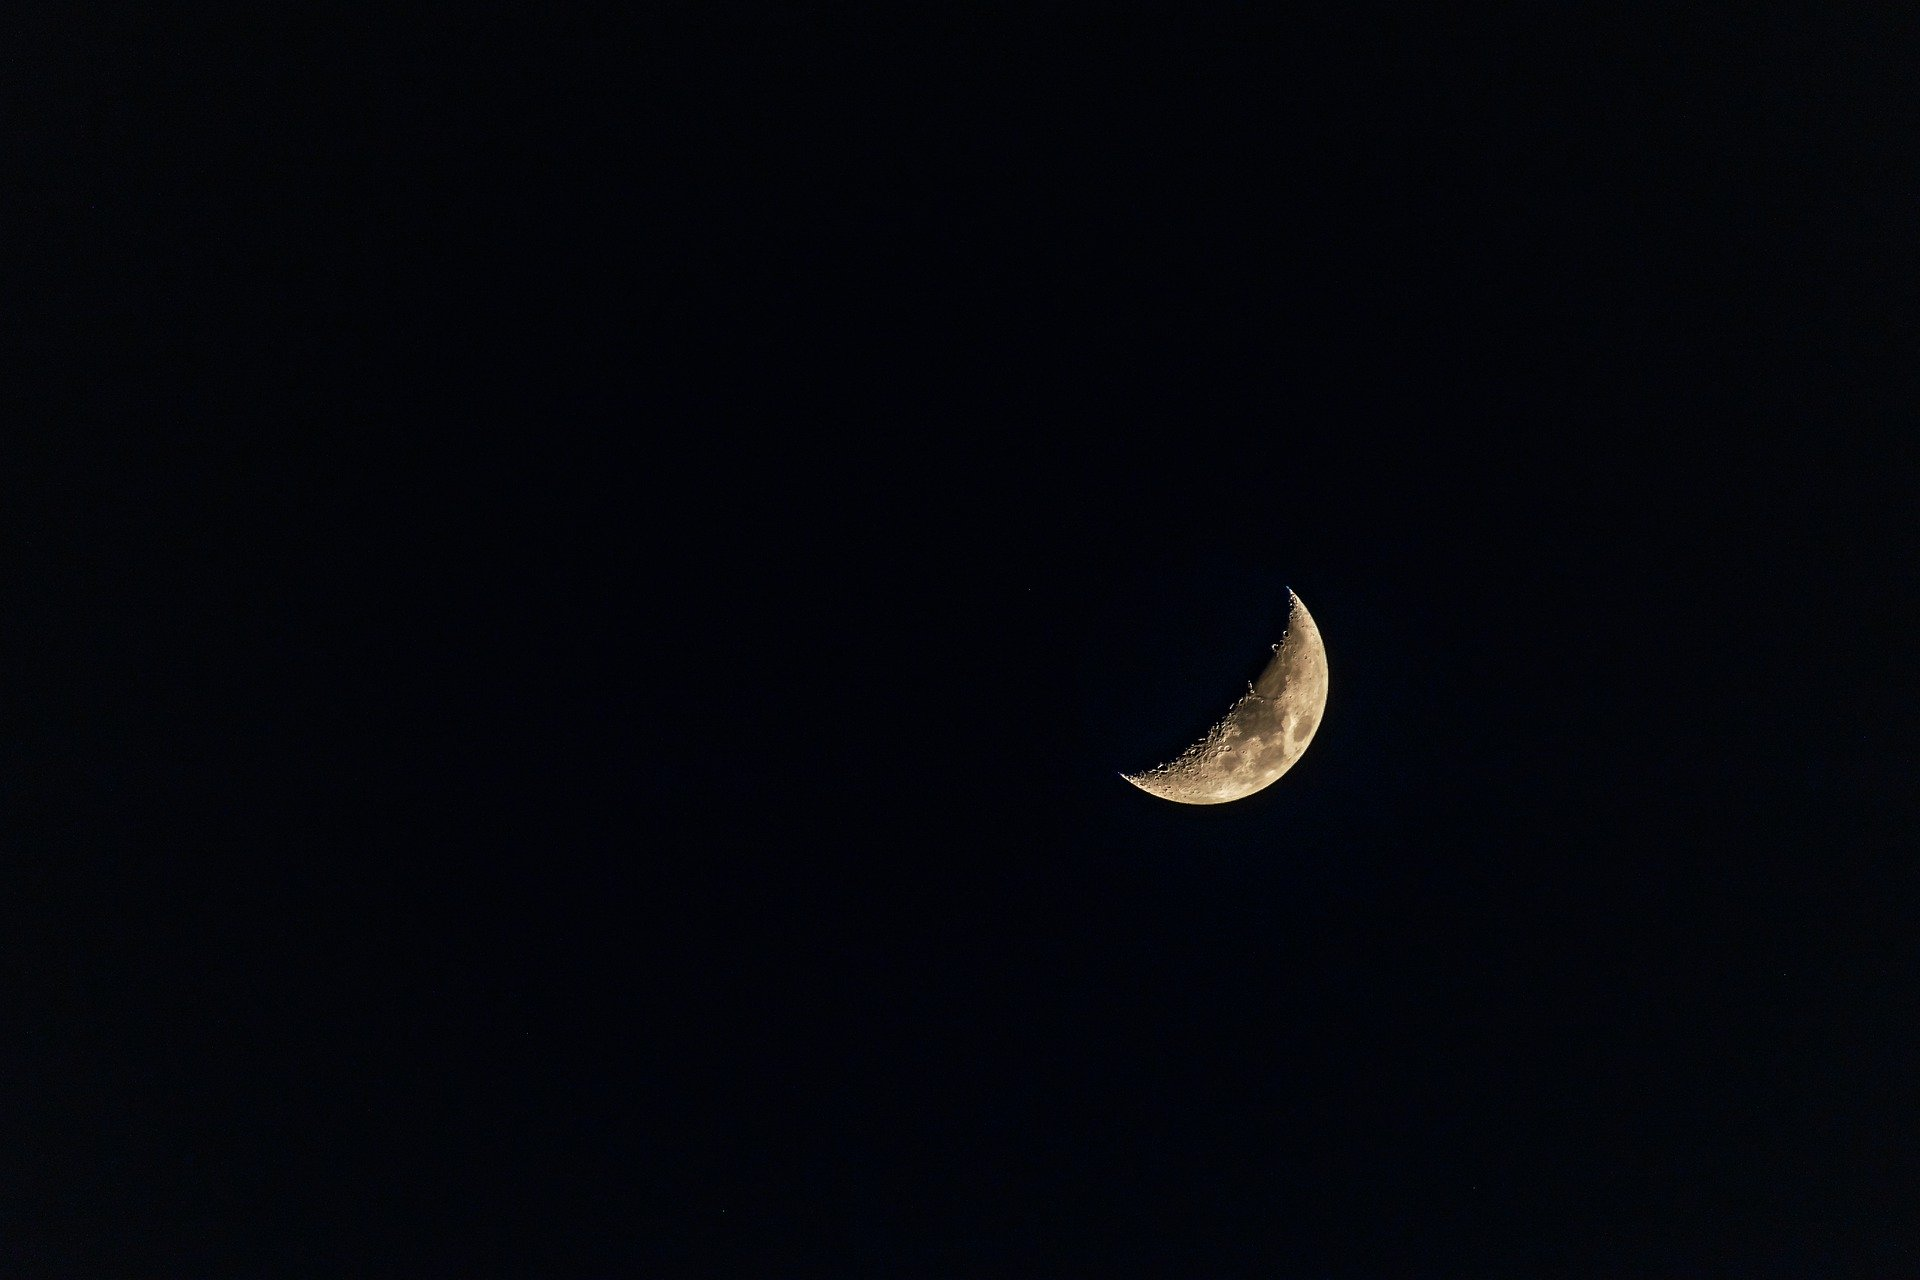 Photo of a half moon in the night sky